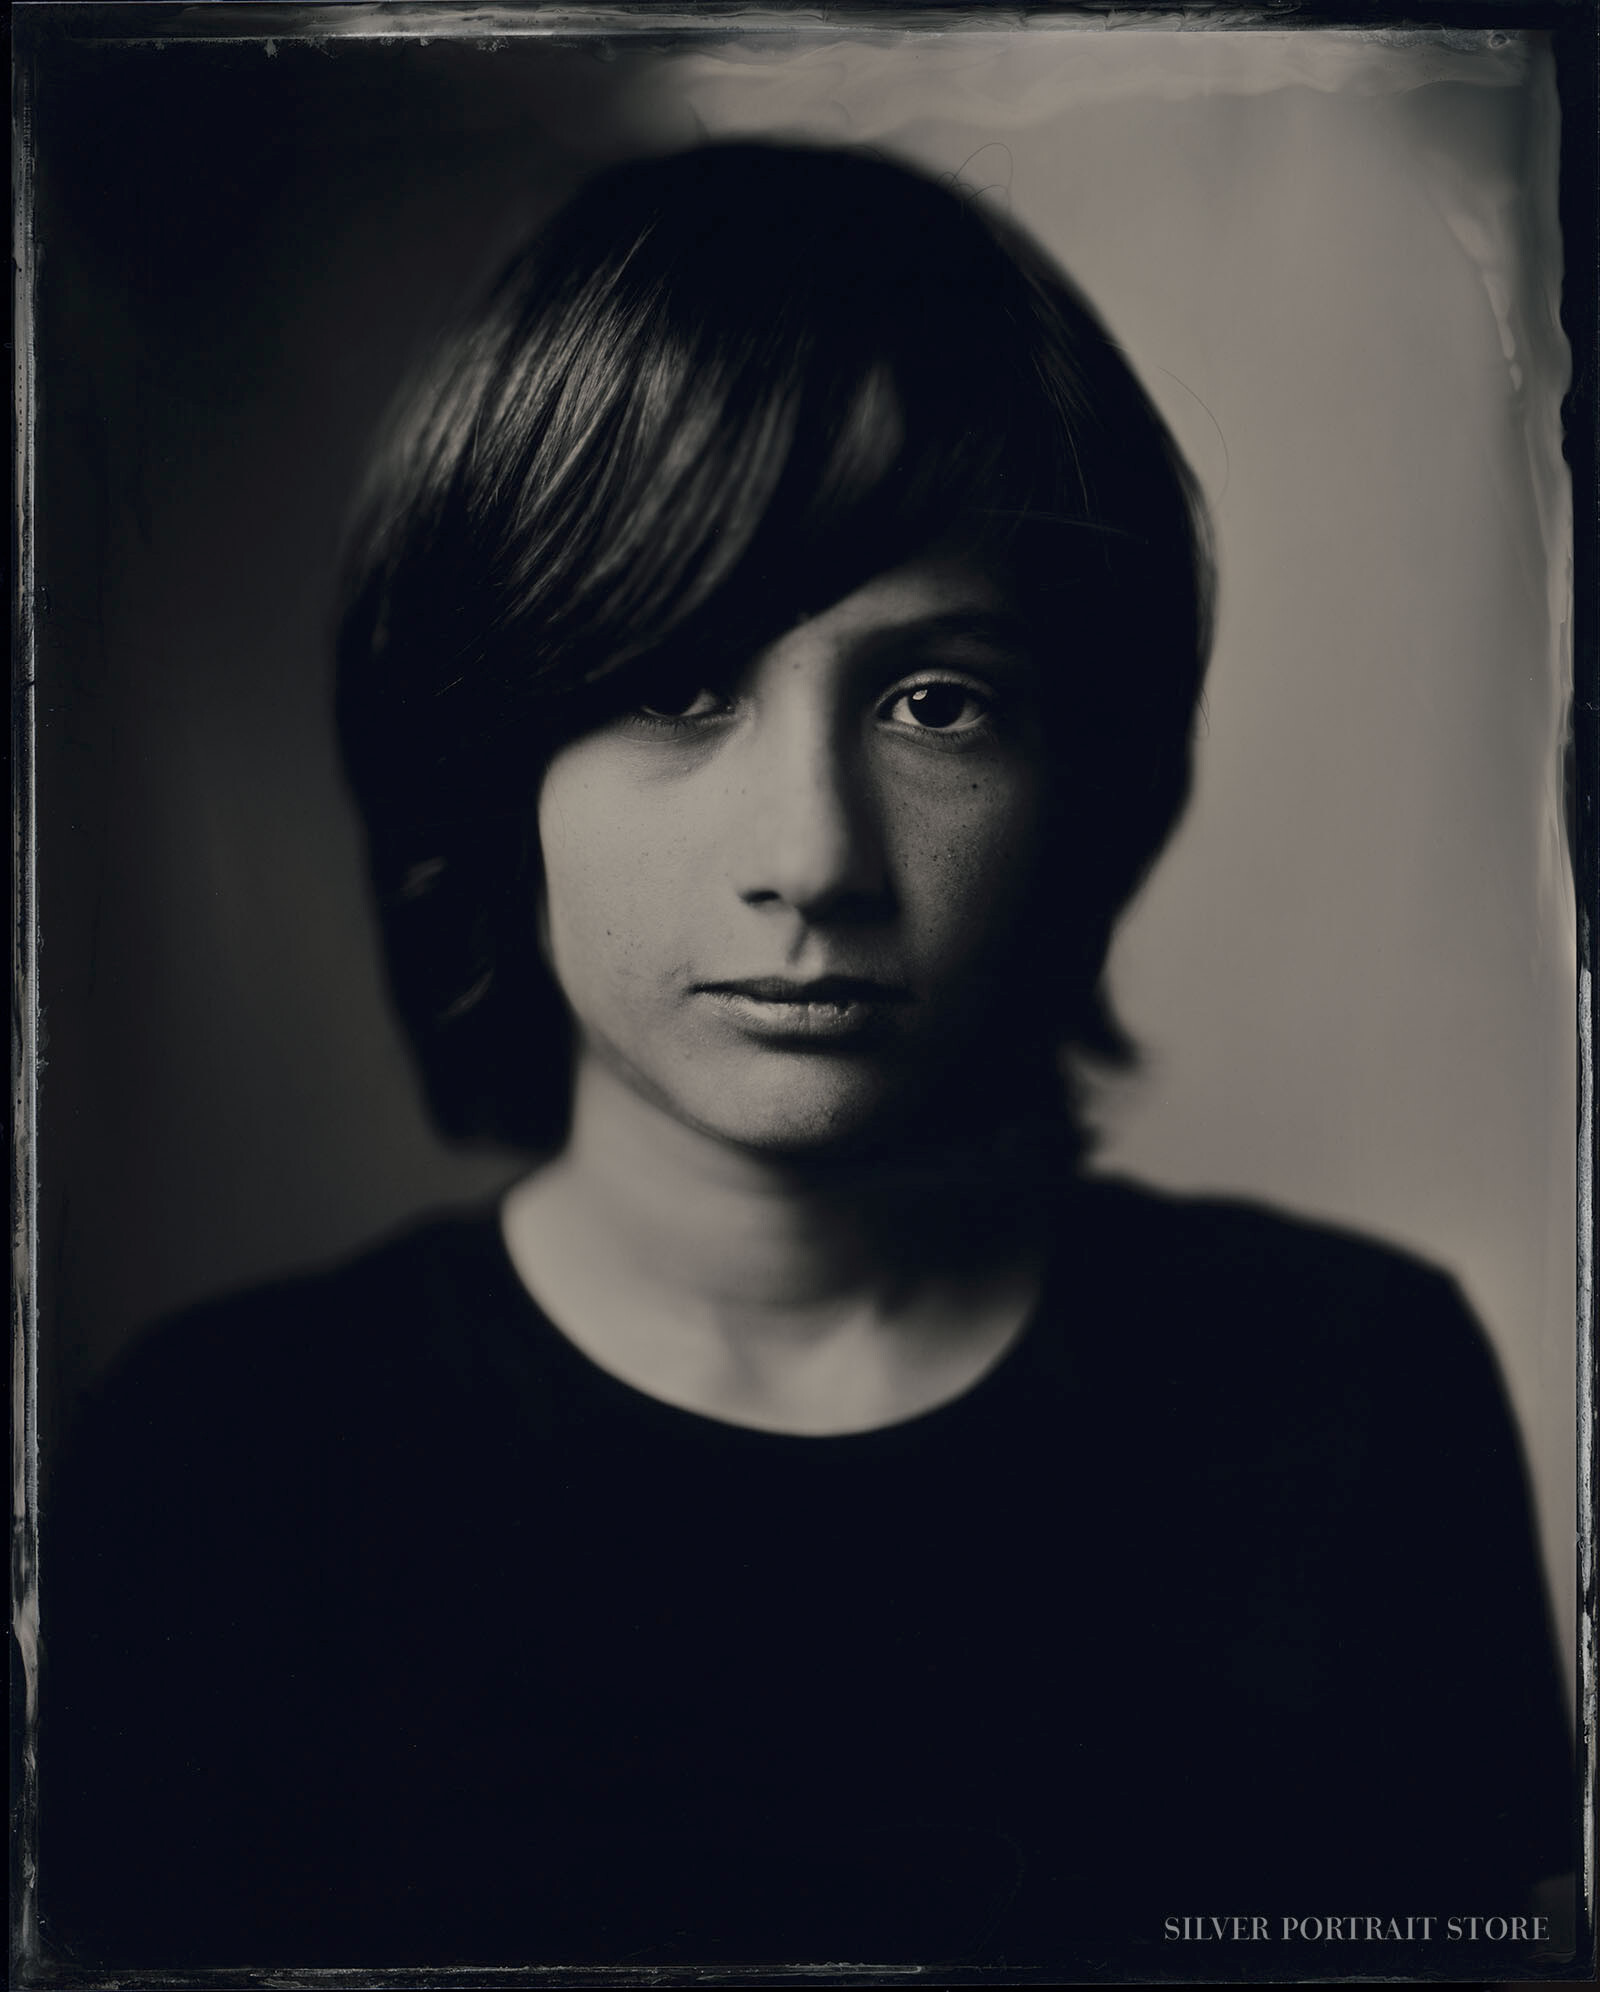 Piet-Silver Portrait Store-Scan from Wet plate collodion-Tintype 20 x 25 cm.